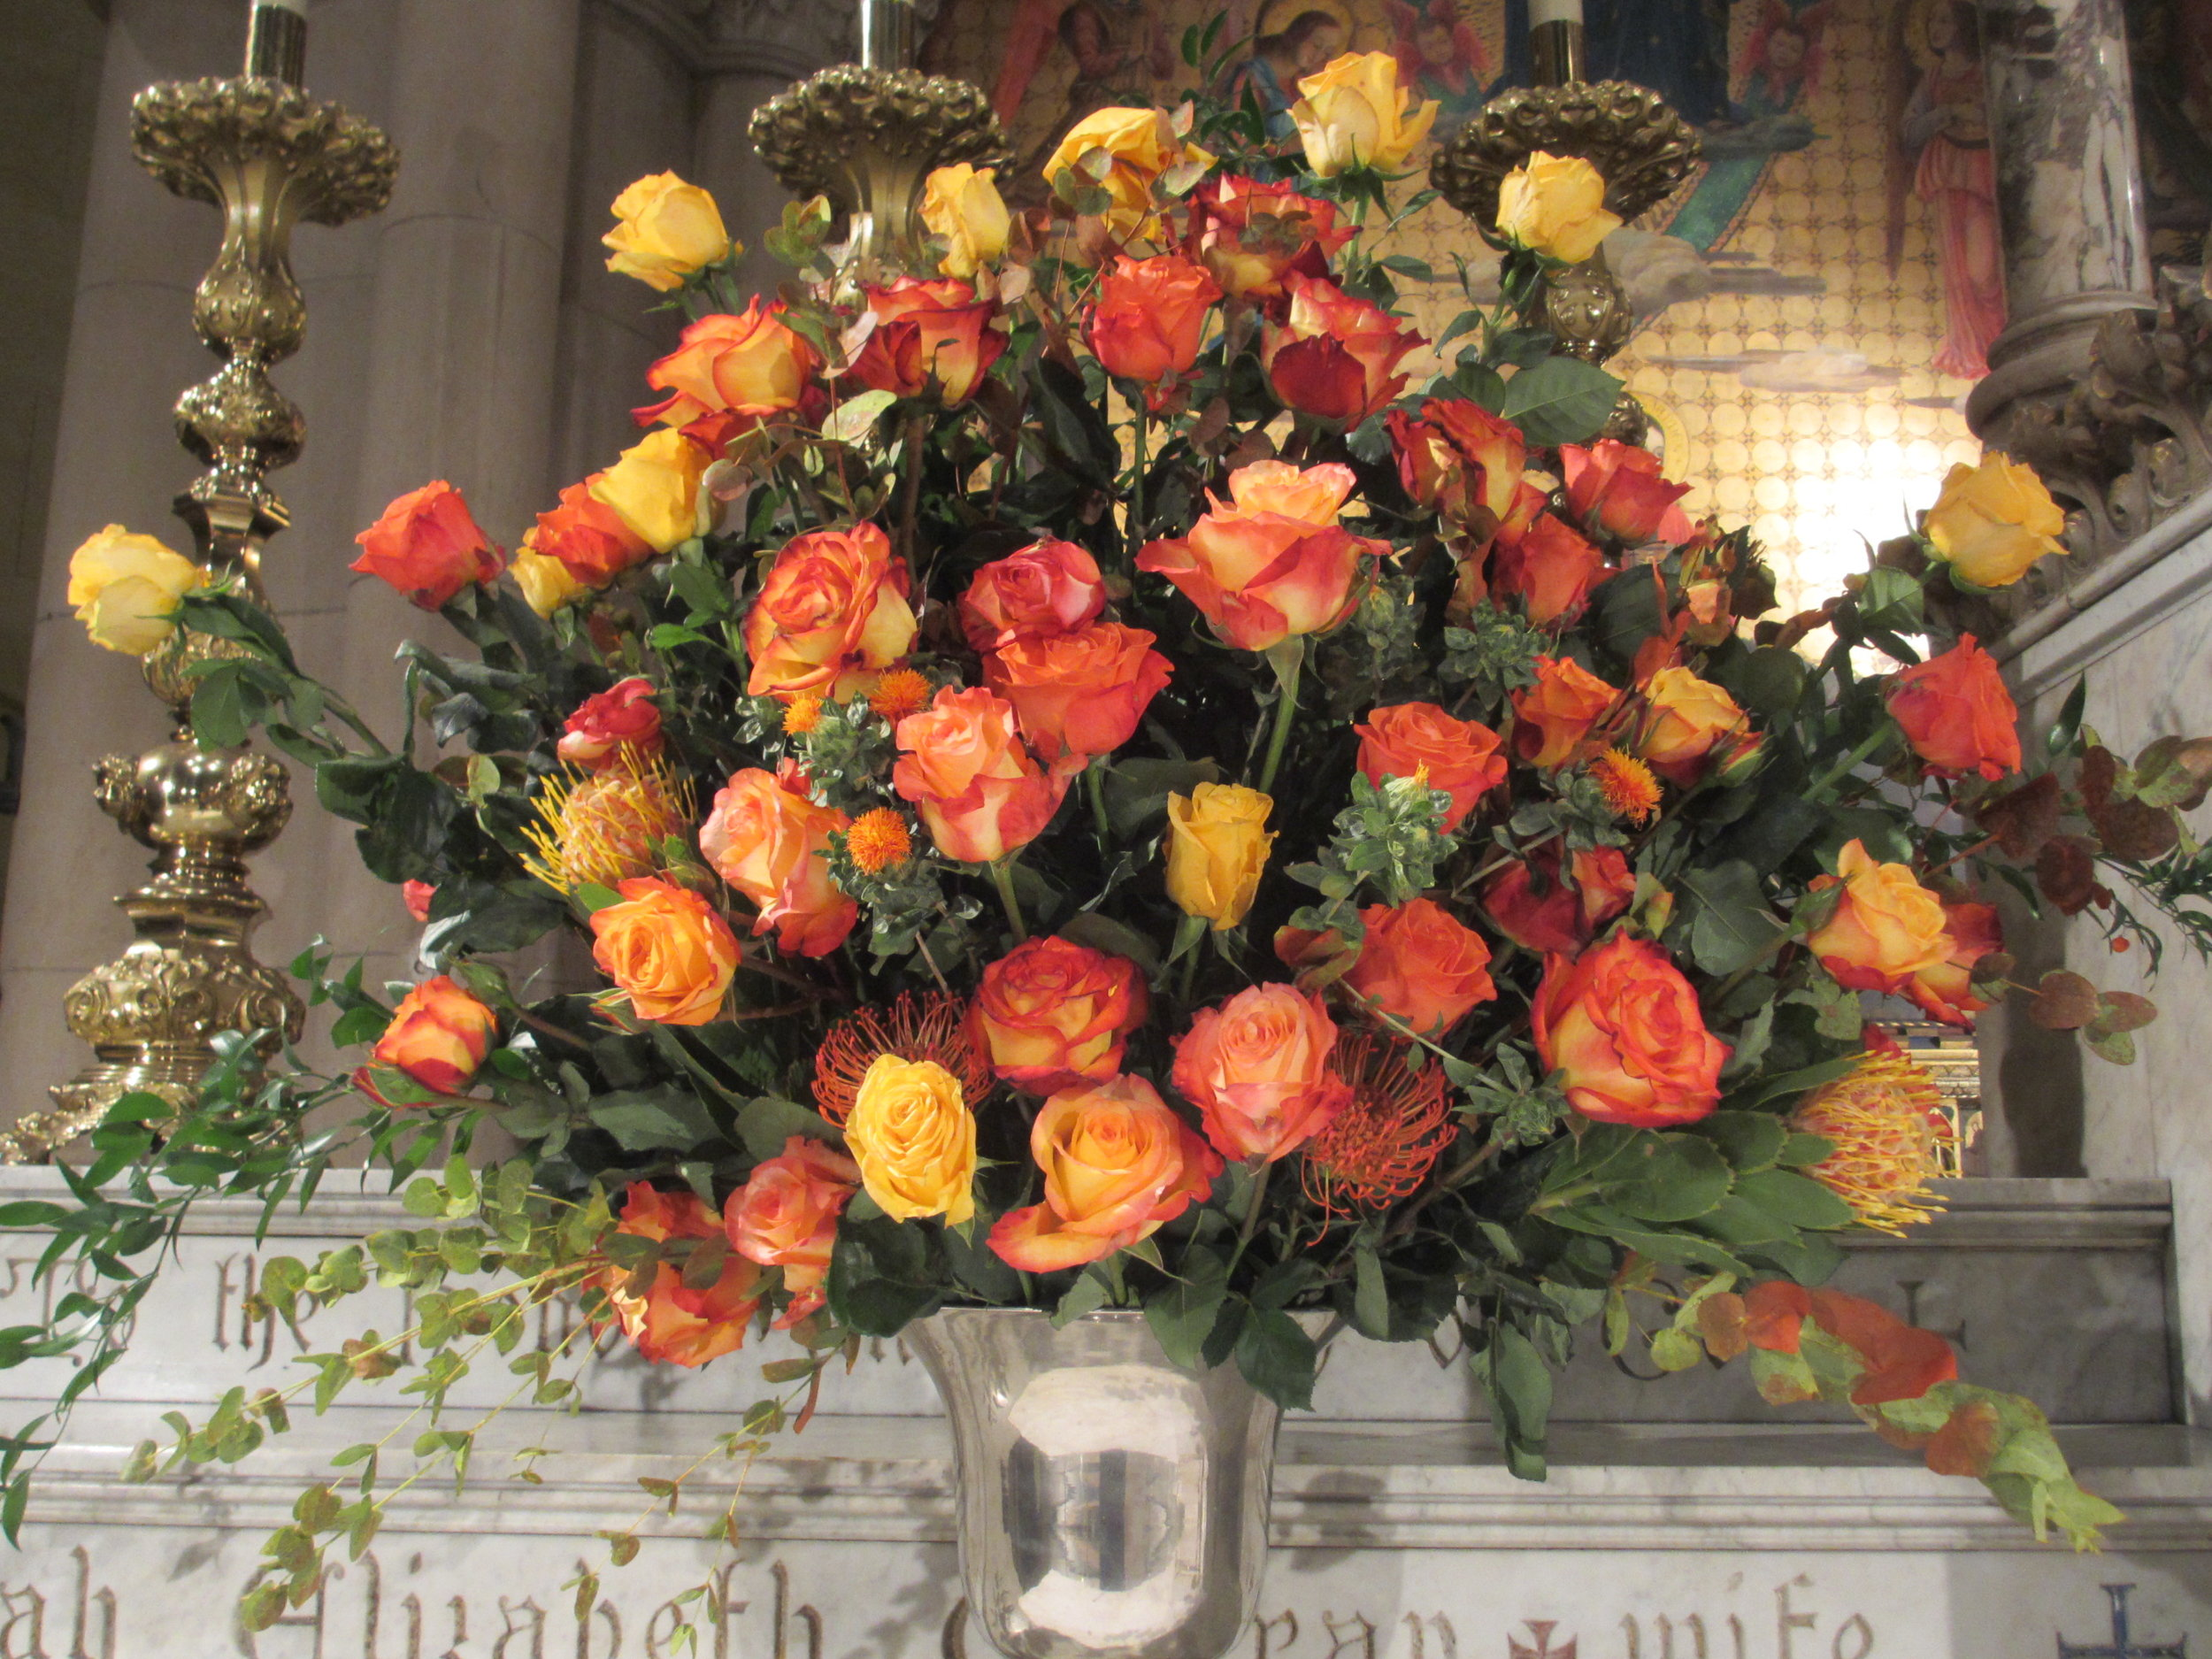 The High Altar flowers    Photo by MaryJane Boland